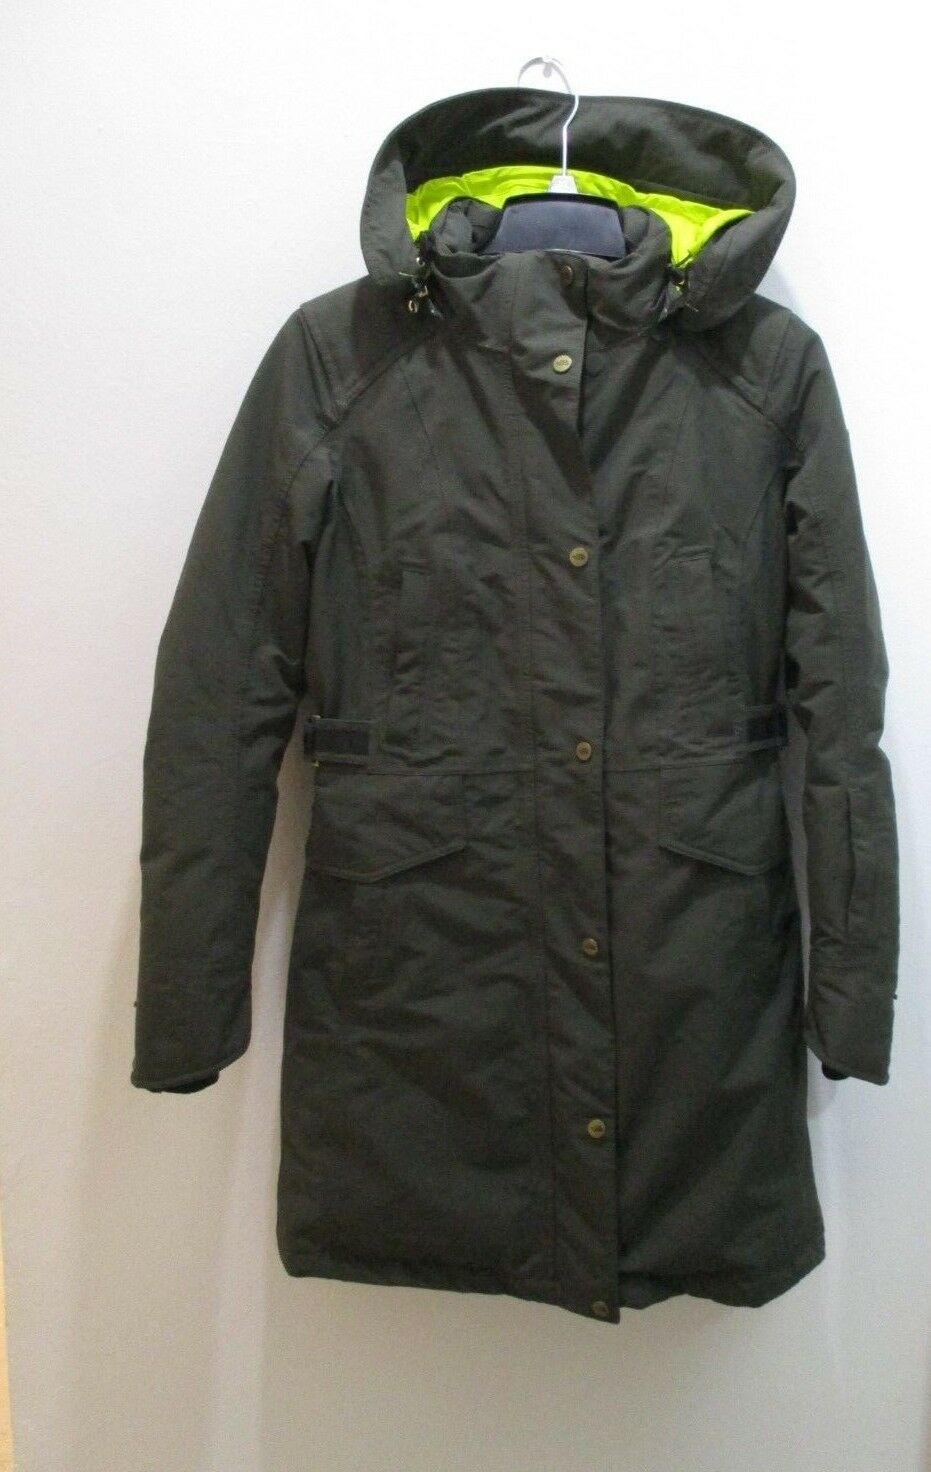 North Face women's winter coat CC06 neon Olive green S P Made in Indonesia